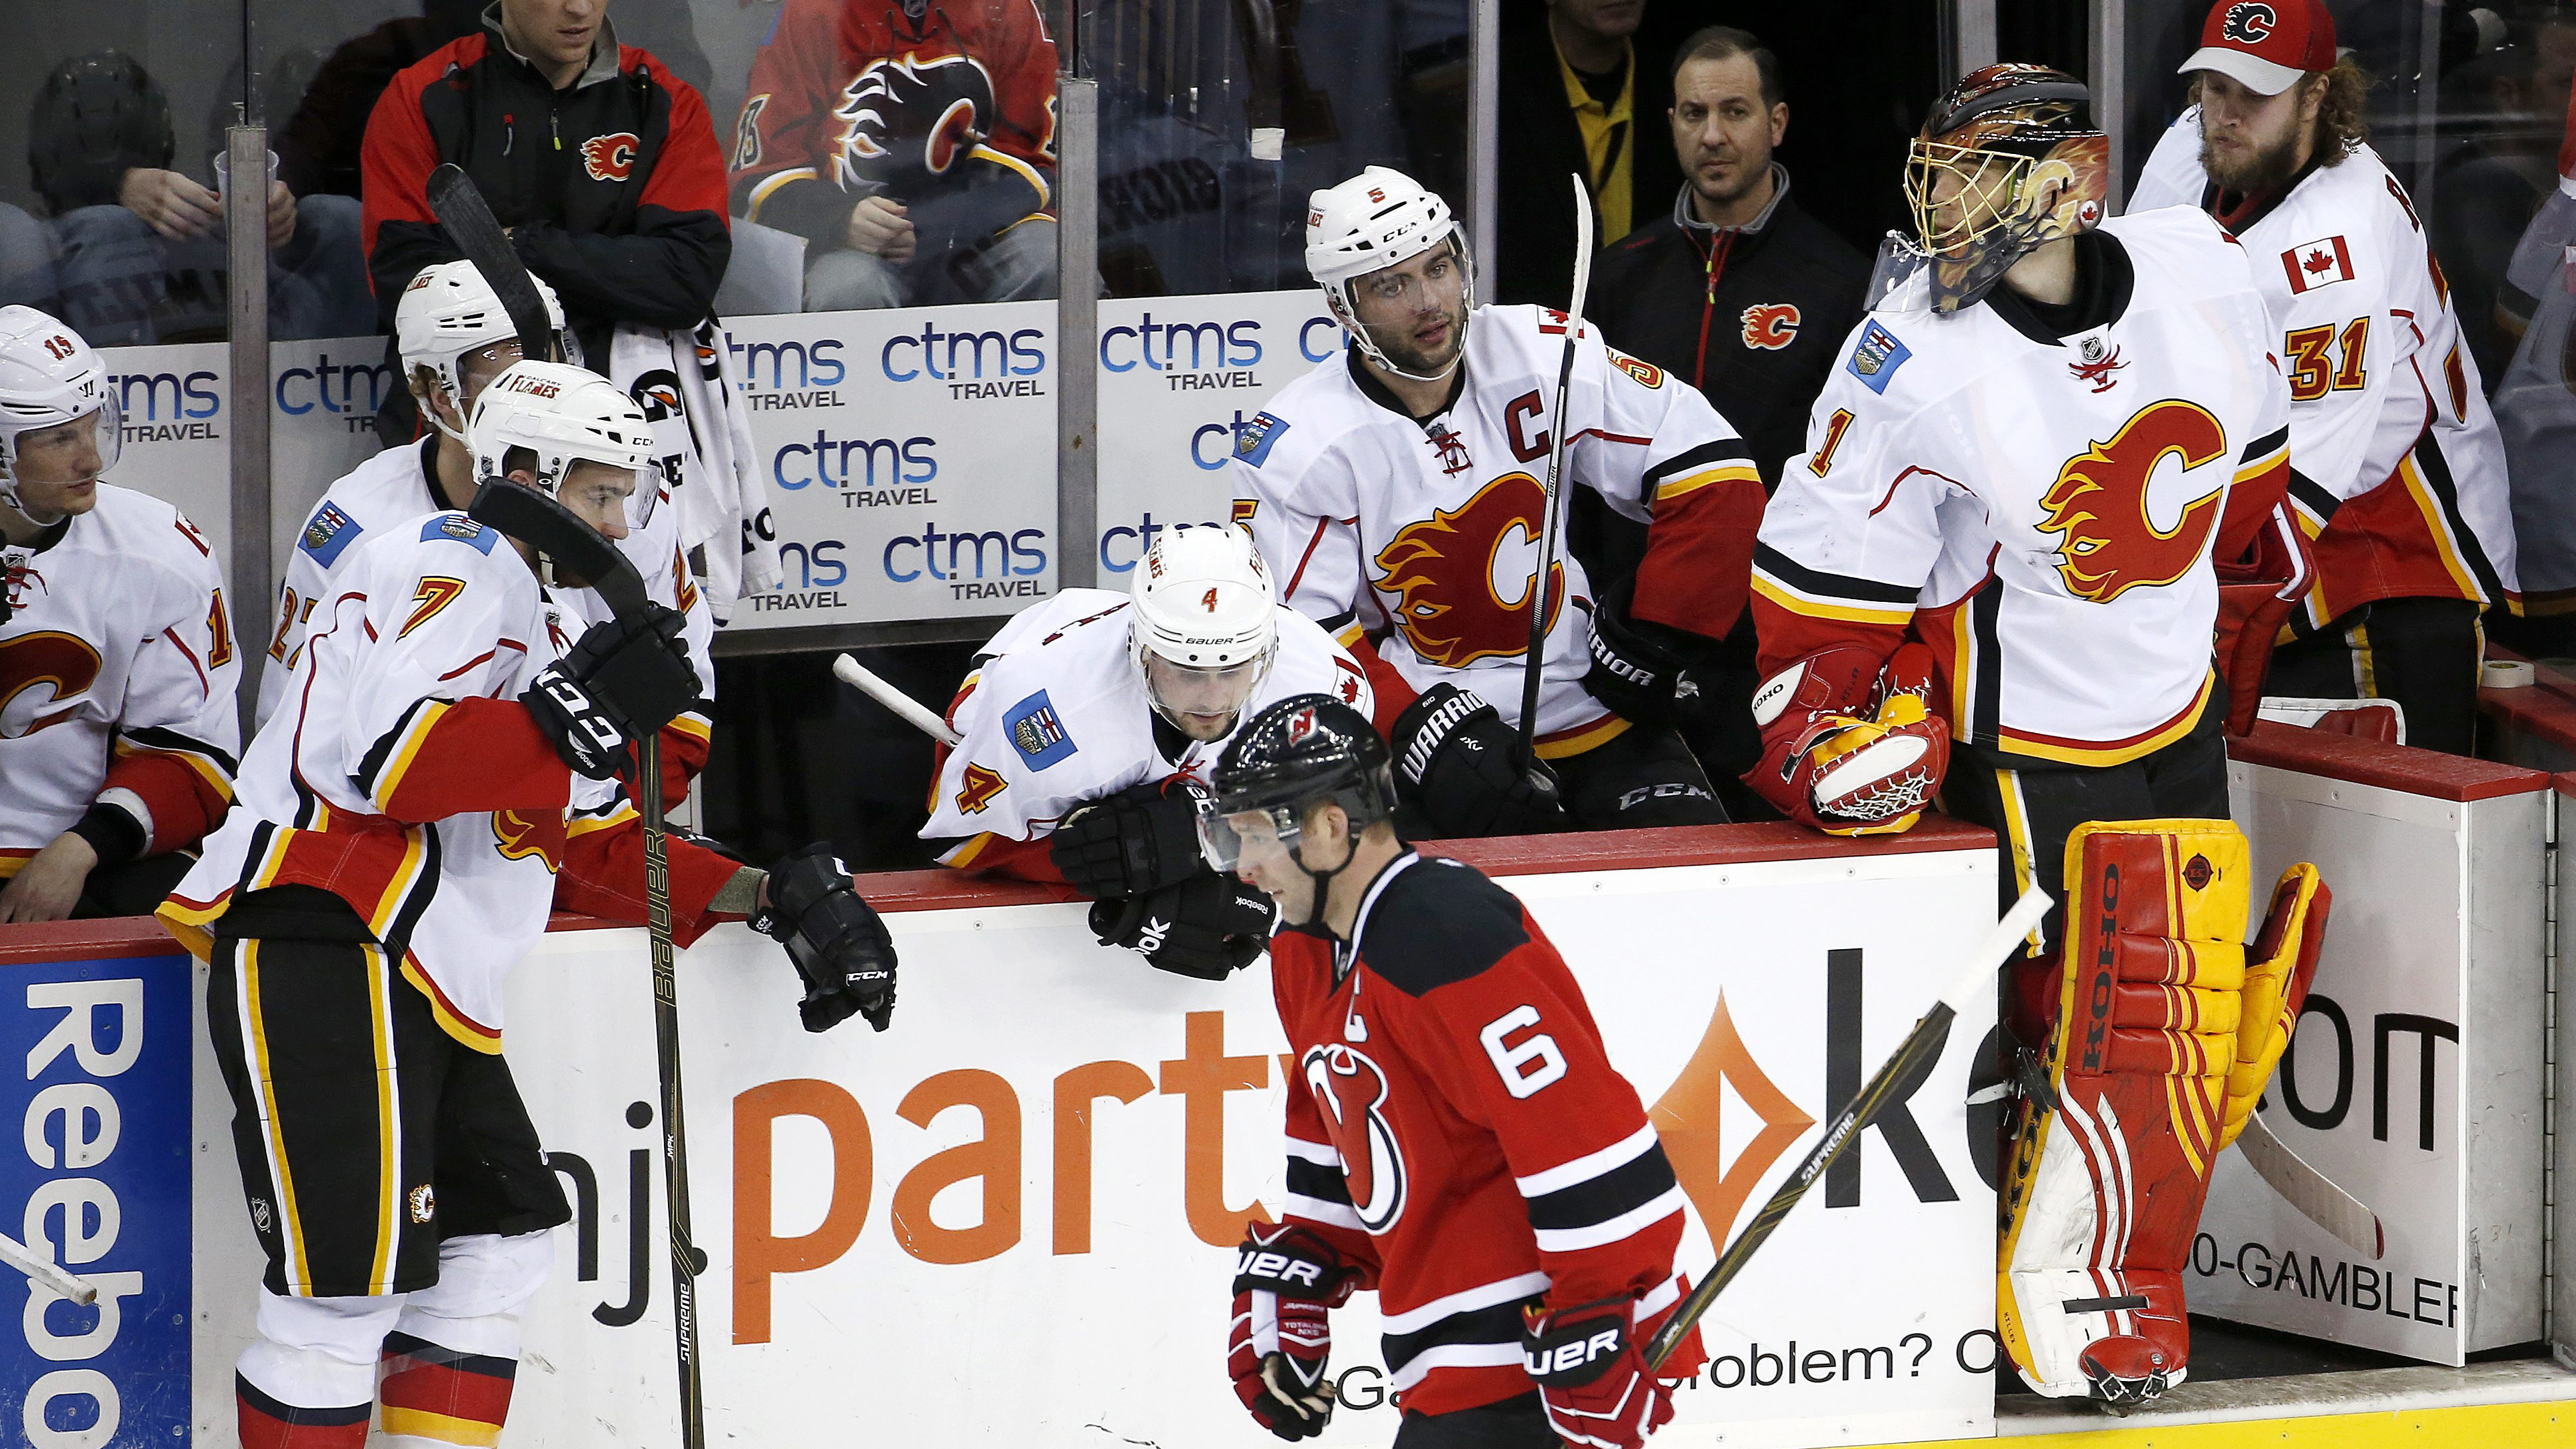 7 Things We Learned In The NHL: A Canadian Crisis